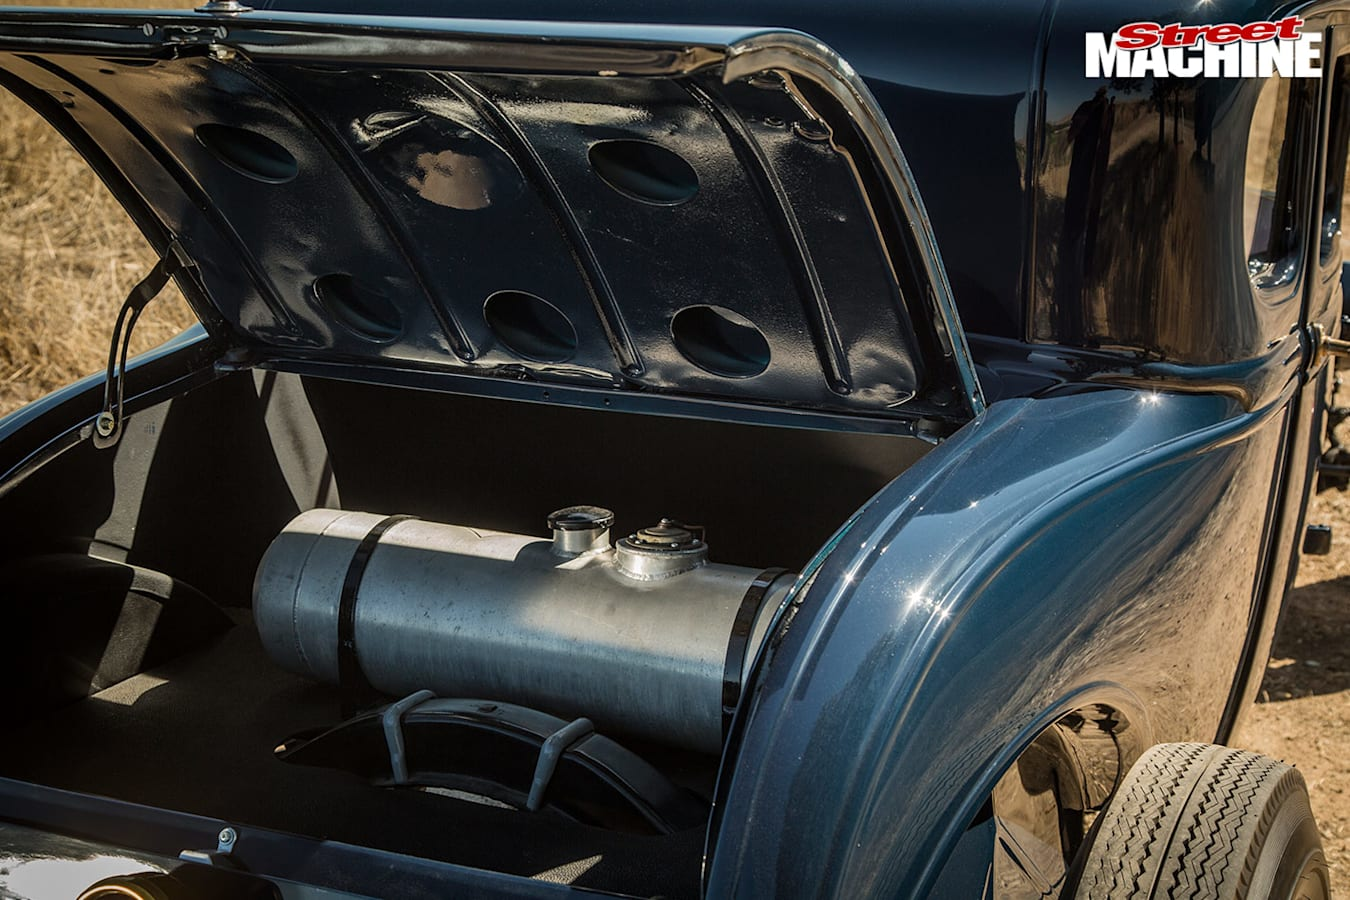 Ford Model A coupe boot